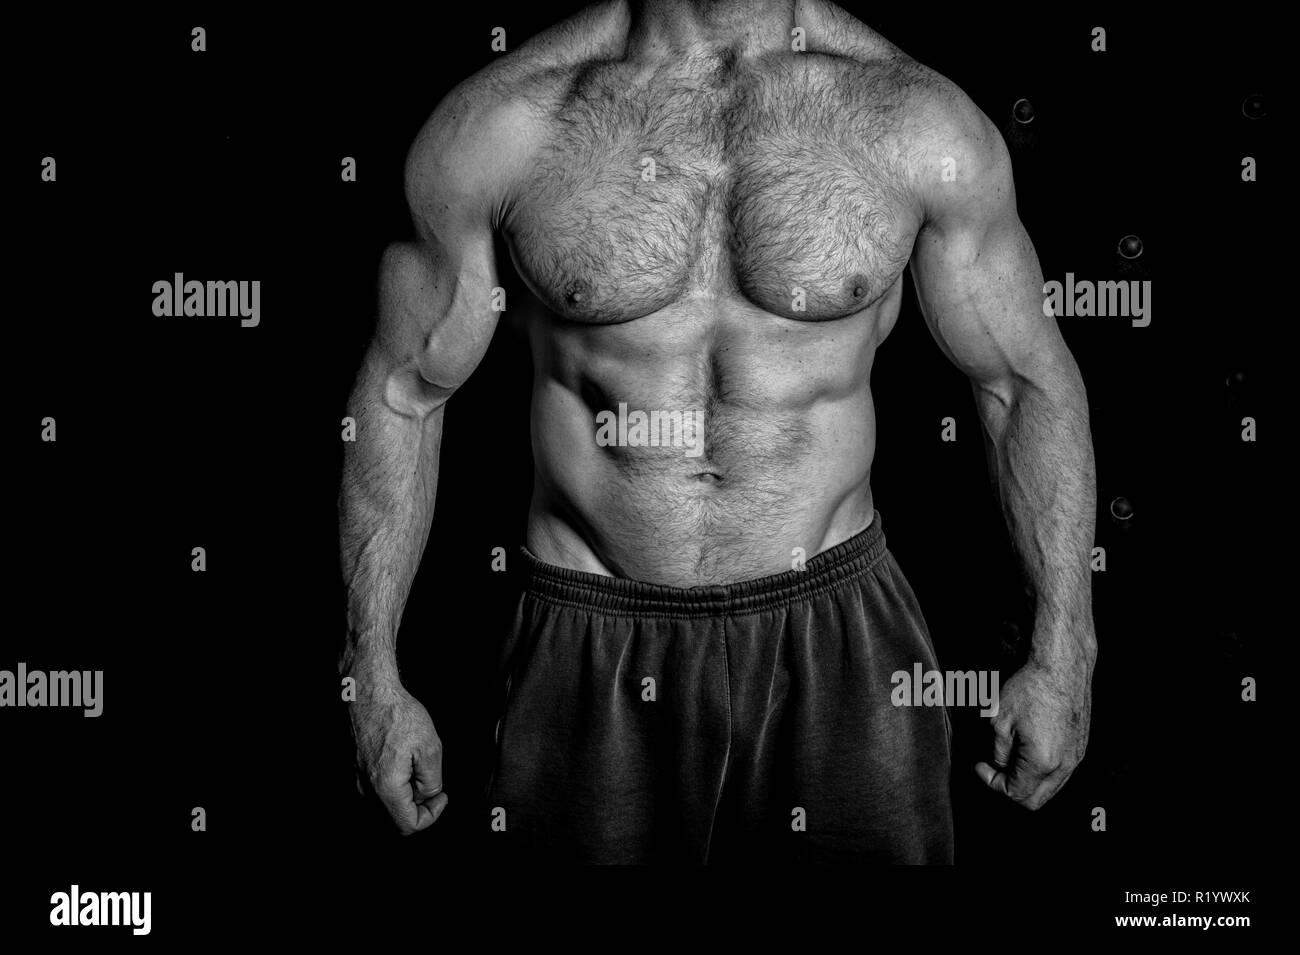 Muscle concept. Muscle torso. Torso with six pack and ab muscle. Muscle factory, black and white. - Stock Image